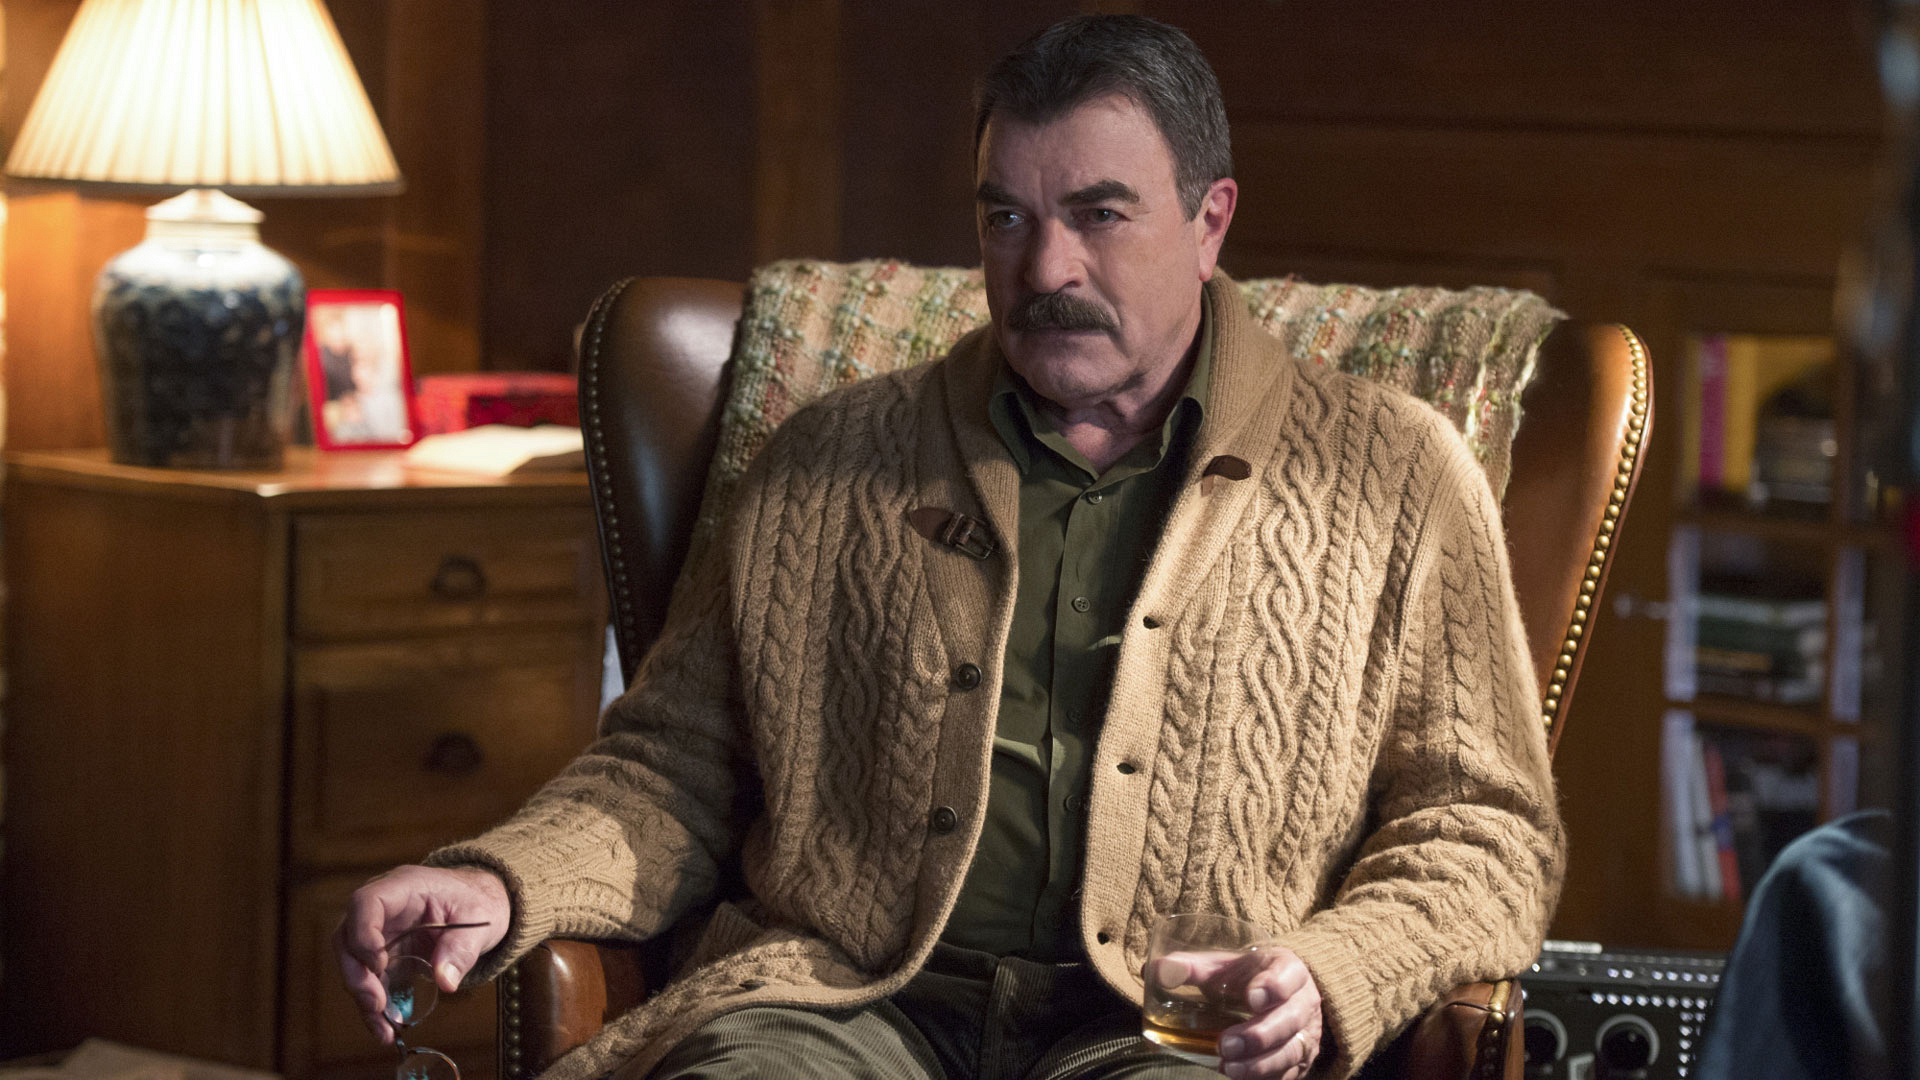 Tom Selleck as Frank Reagan